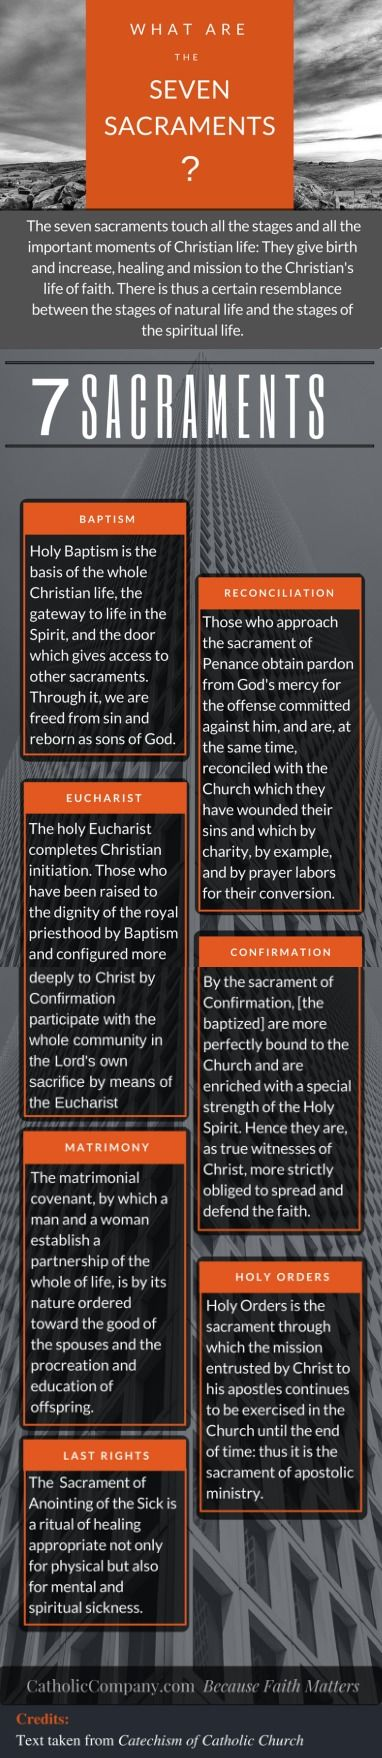 The Seven Sacraments of the Catholic Church